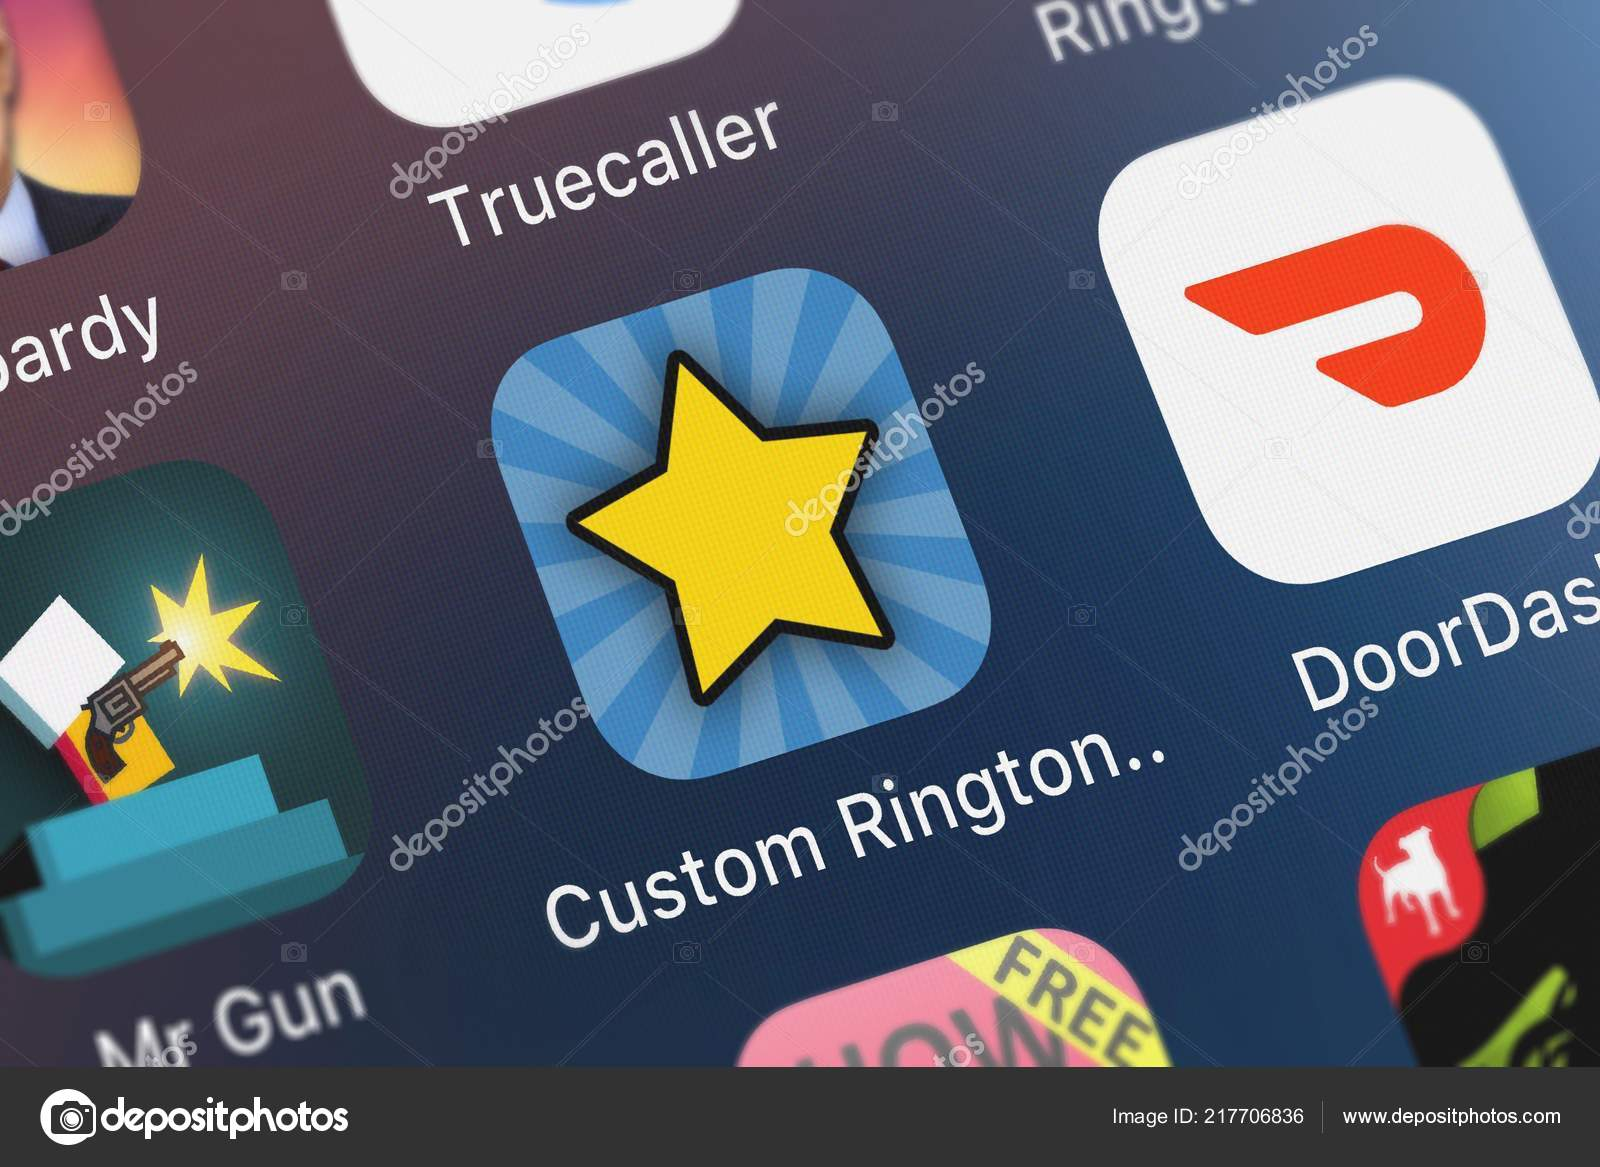 Updated how to install free ringtones for iphone 6s, 5s, 4s, 6.